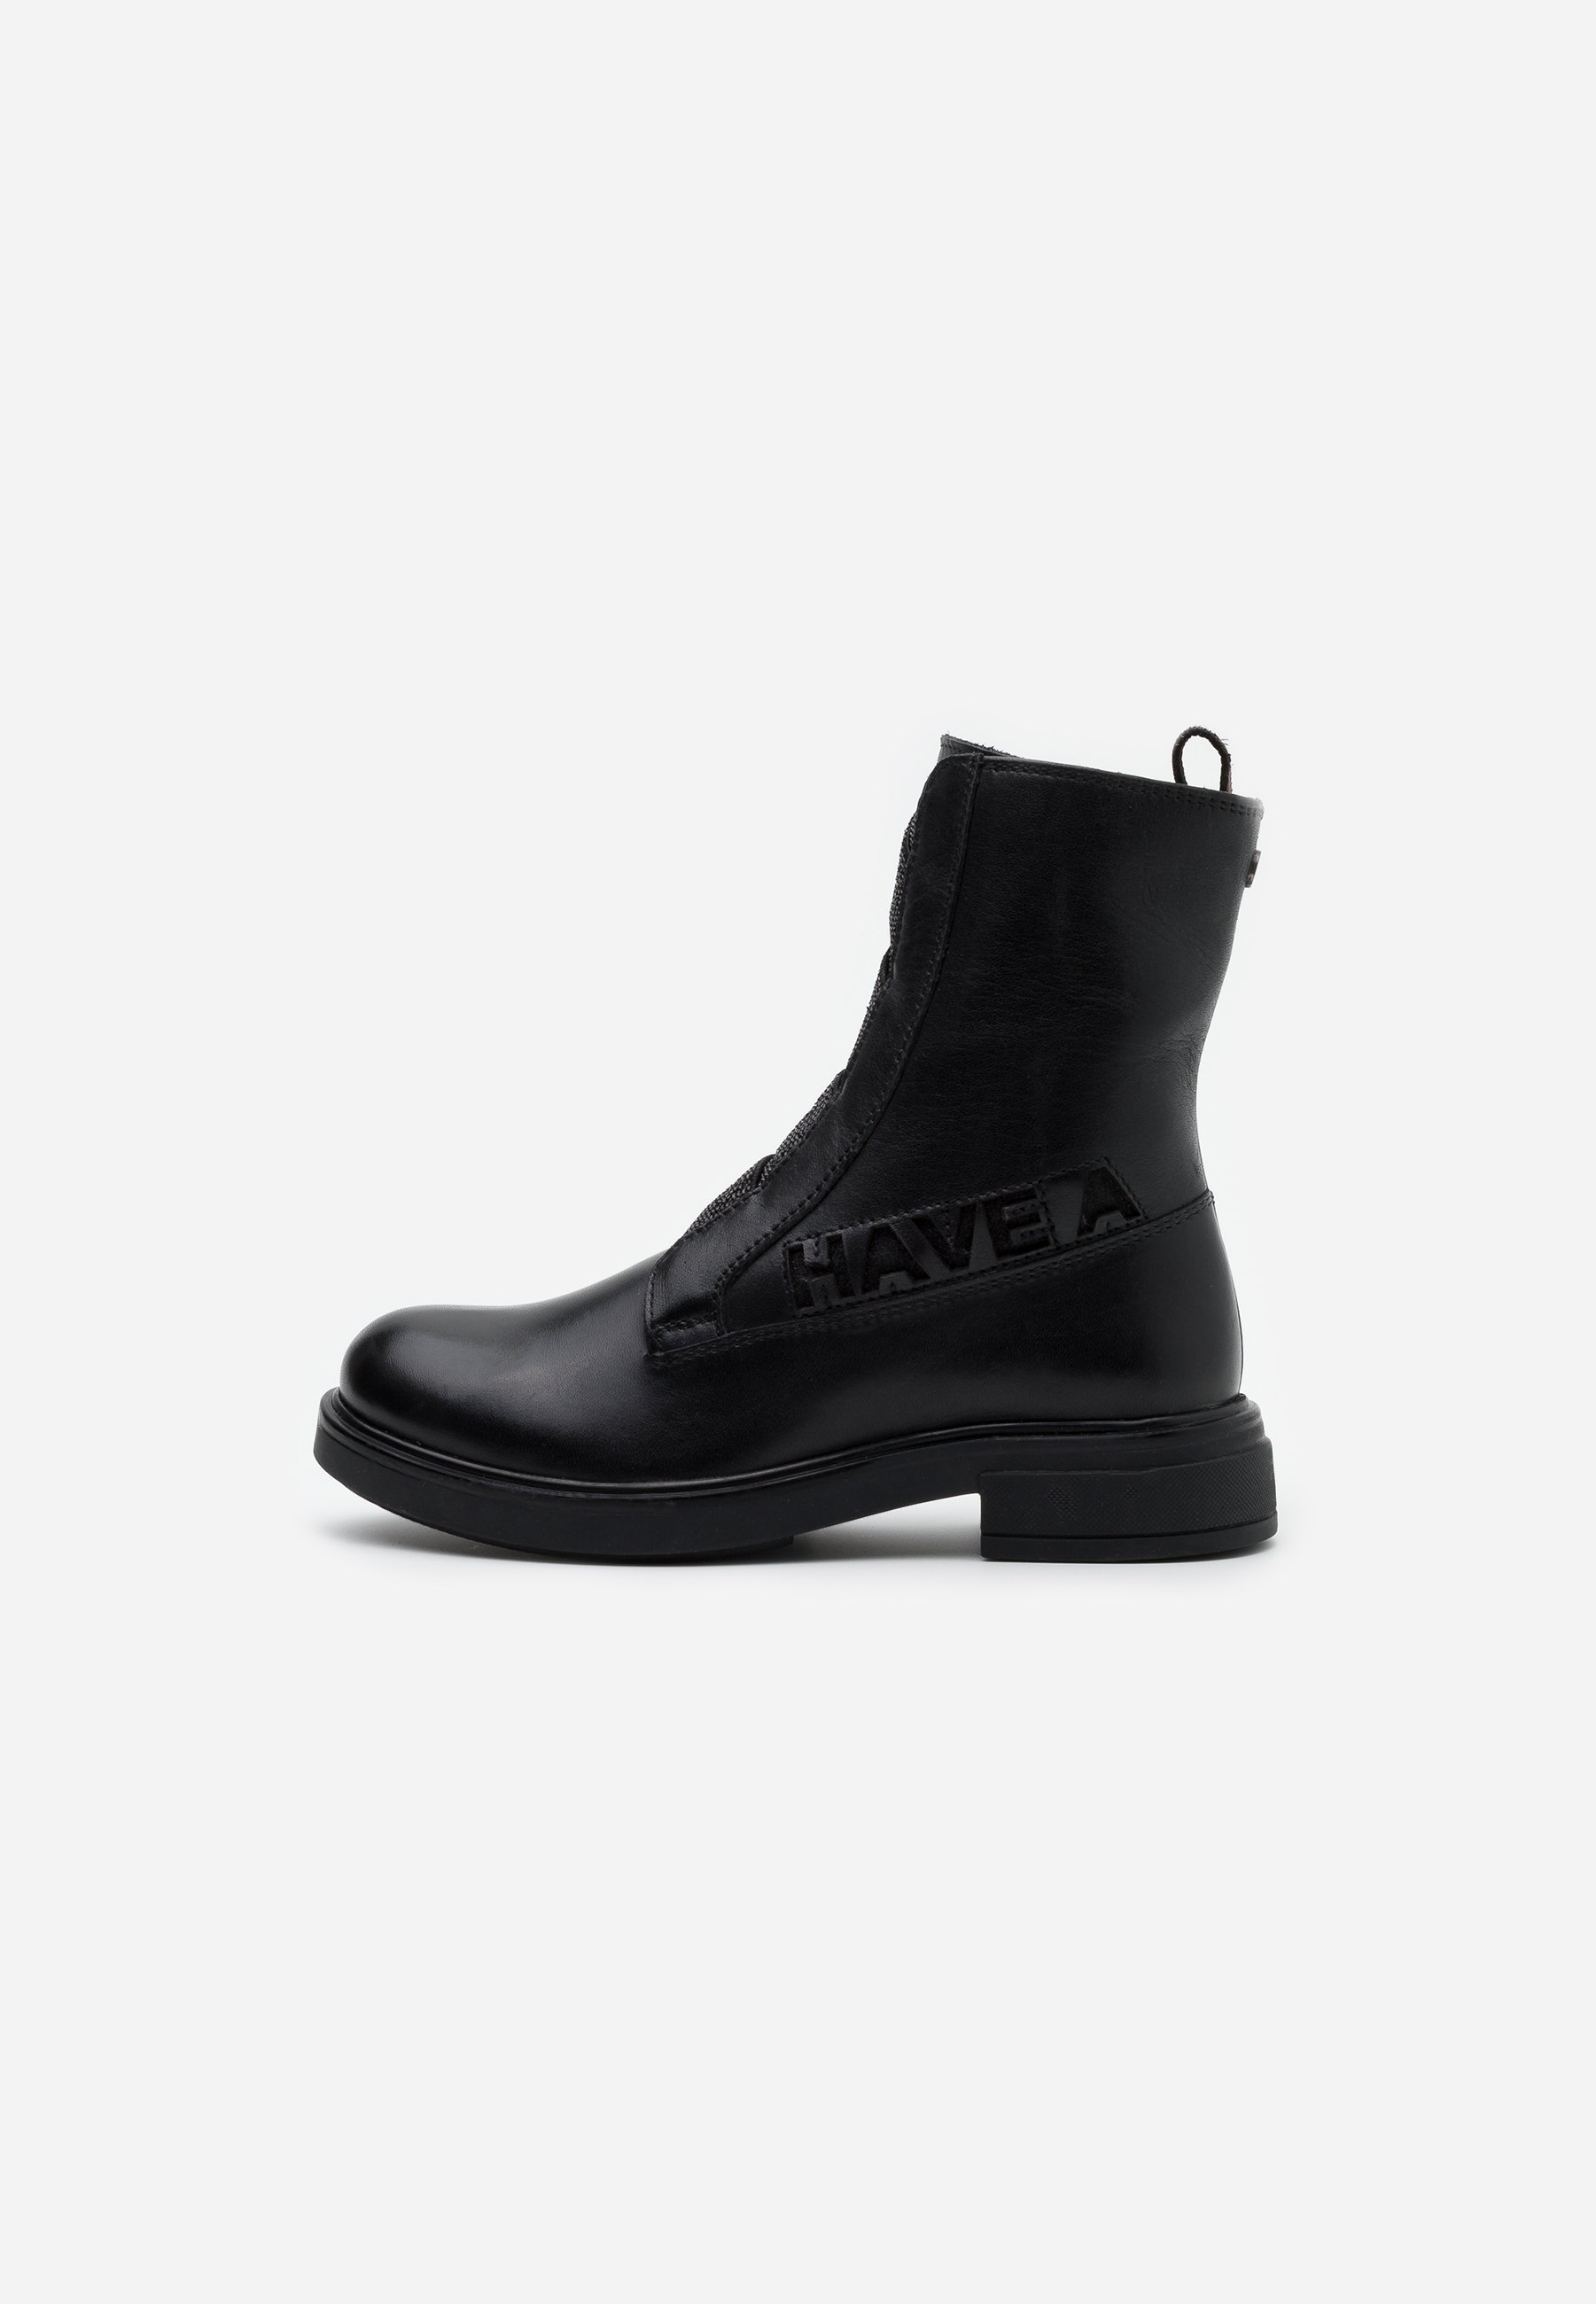 Kids Classic ankle boots - black